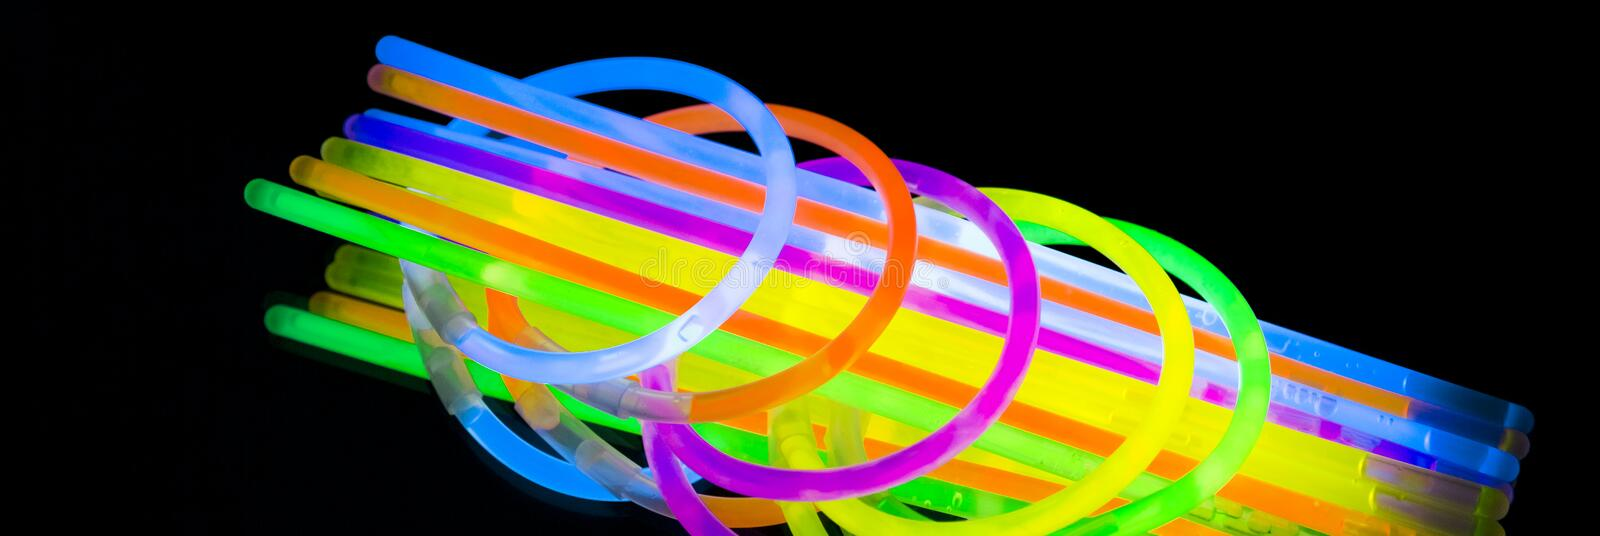 Colorful fluorescent light neon glow stick bracelet strap wristband and tubes on mirror reflection black background stock photos